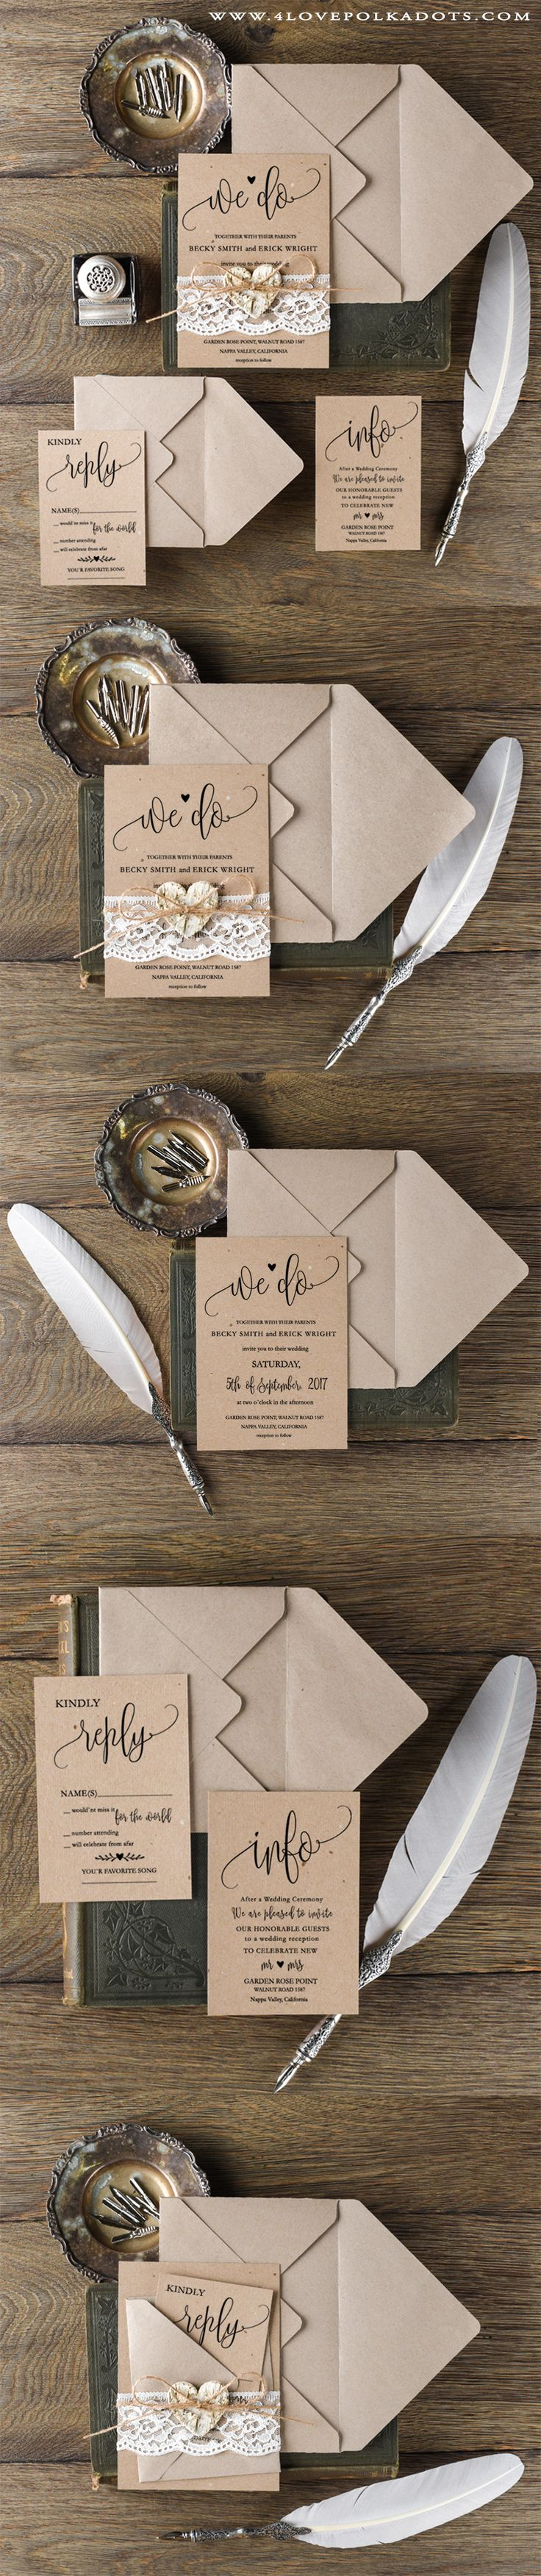 149 best Cards Wedding Invites images on Pinterest